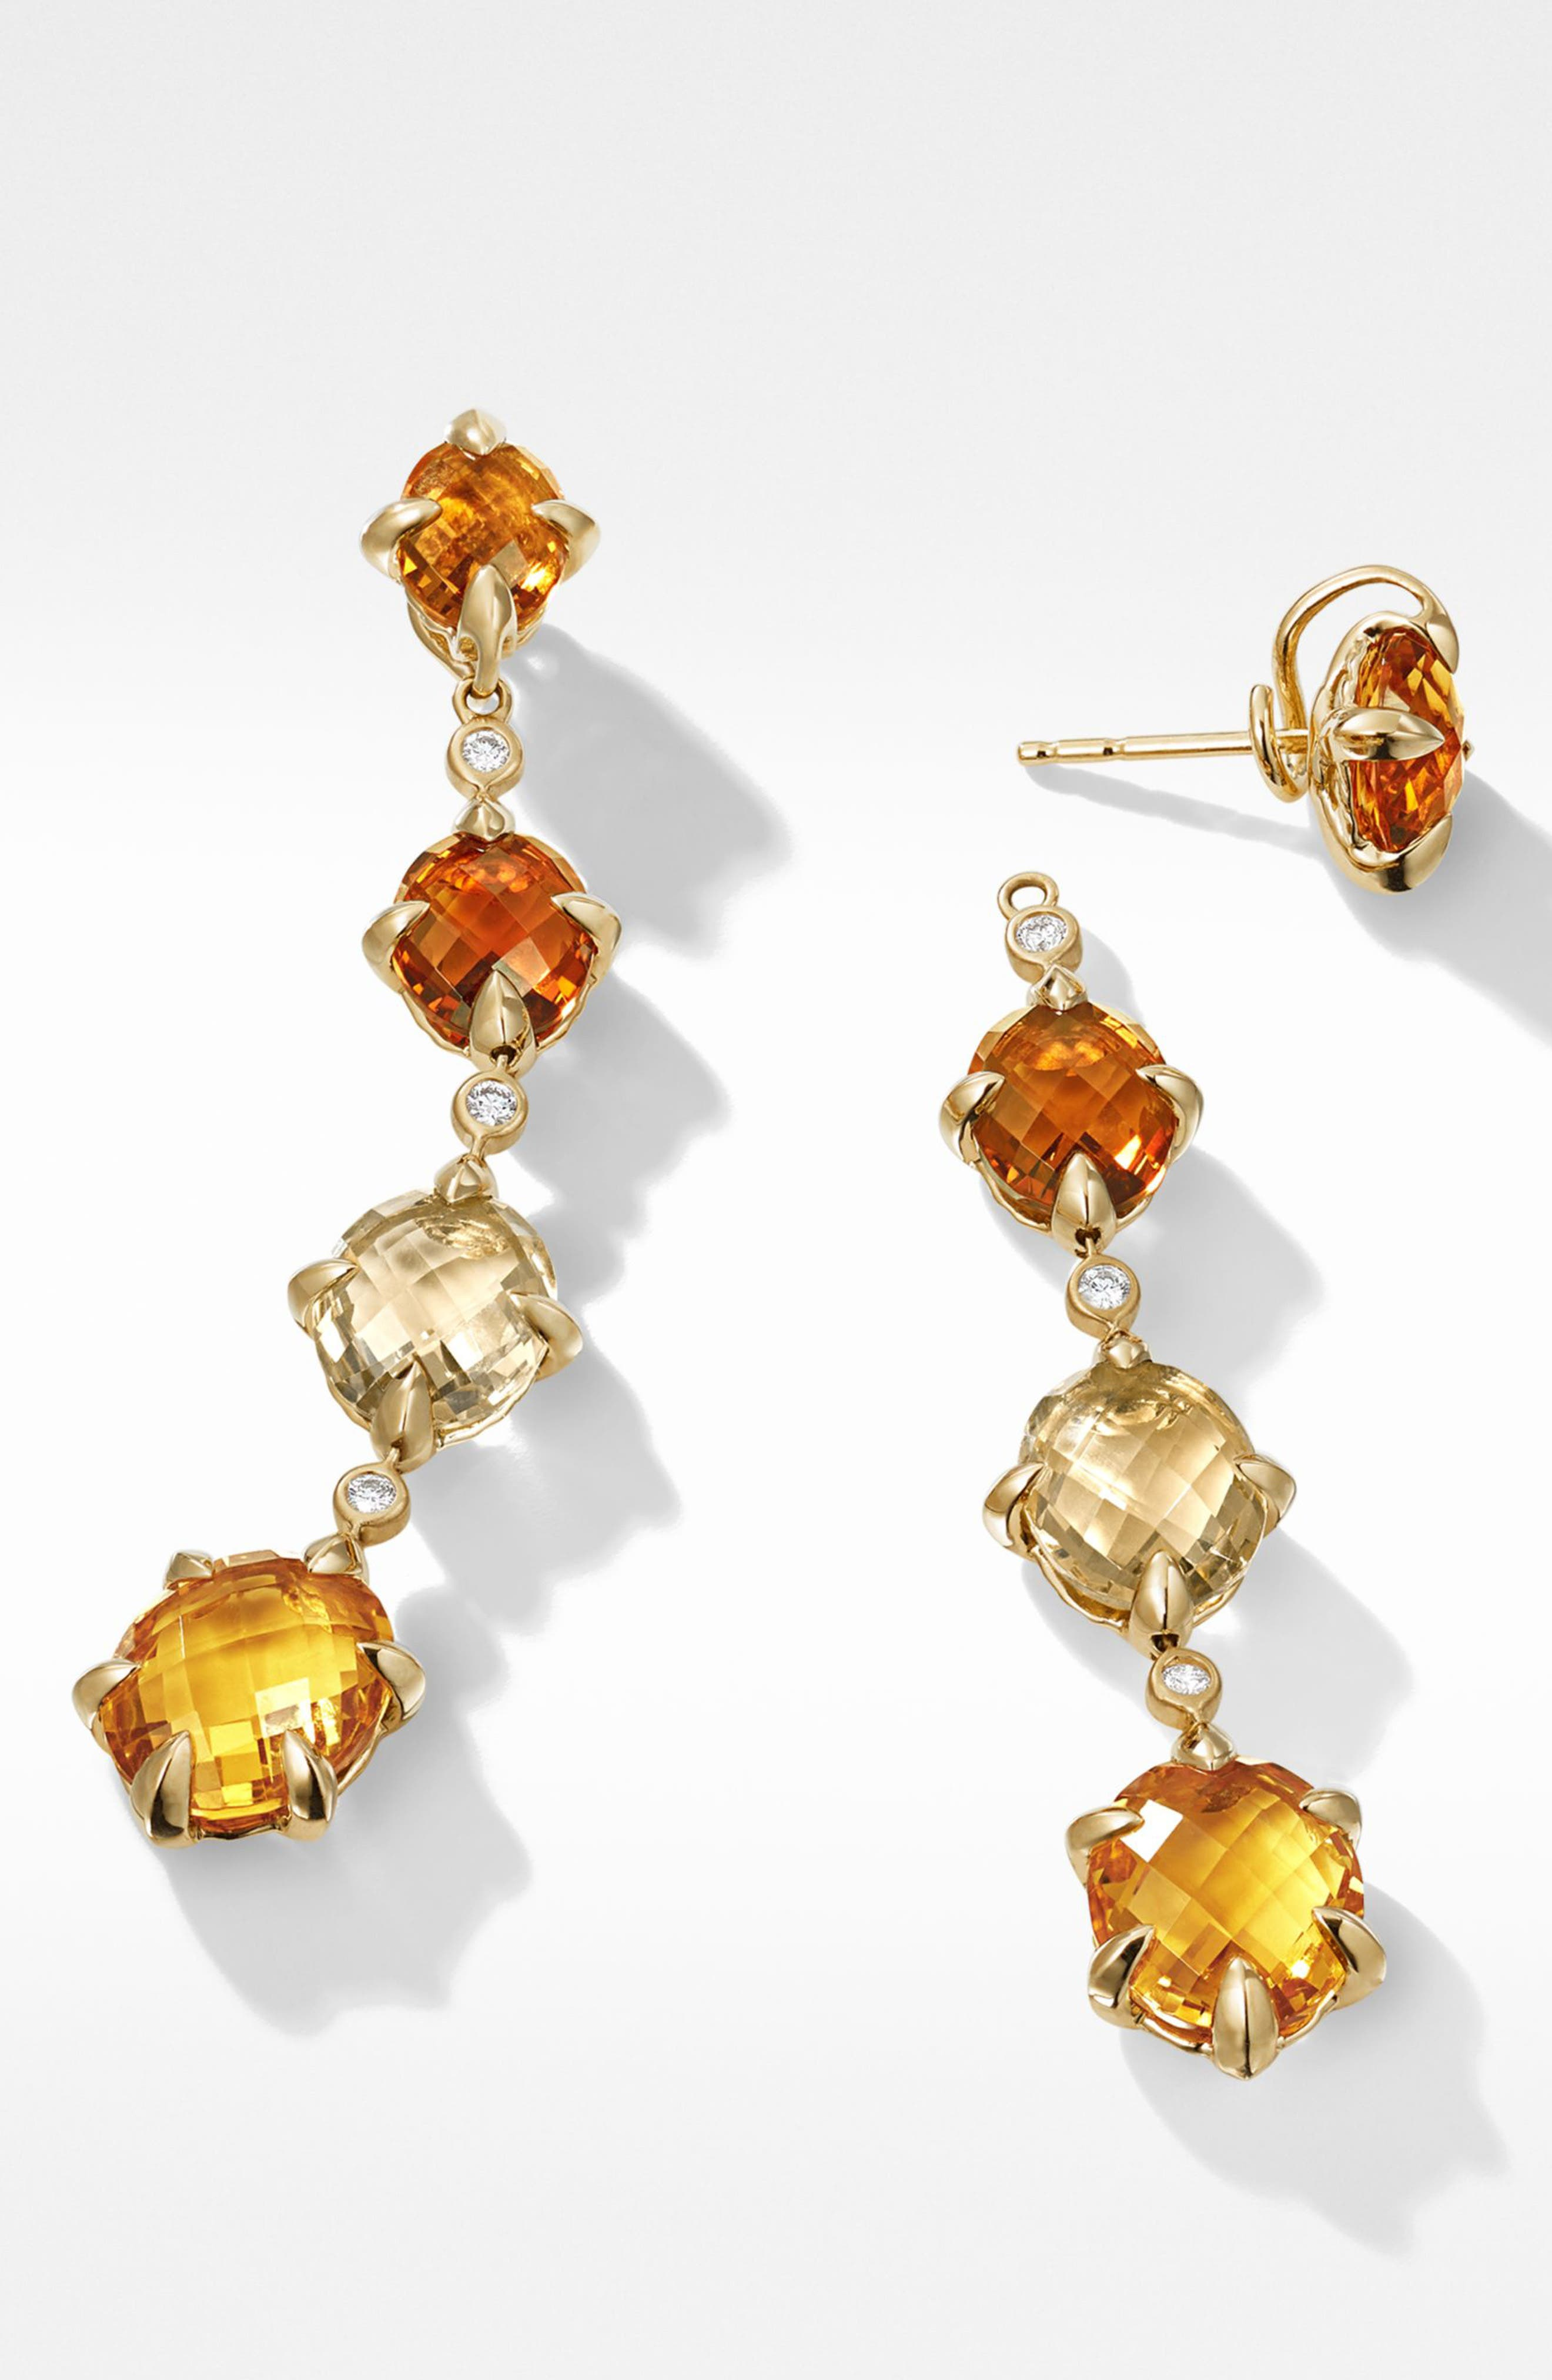 Chatelaine<sup>®</sup> 18k Gold Drop Earrings with Diamonds,                             Alternate thumbnail 2, color,                             Gold/ Diamond/ Citrine